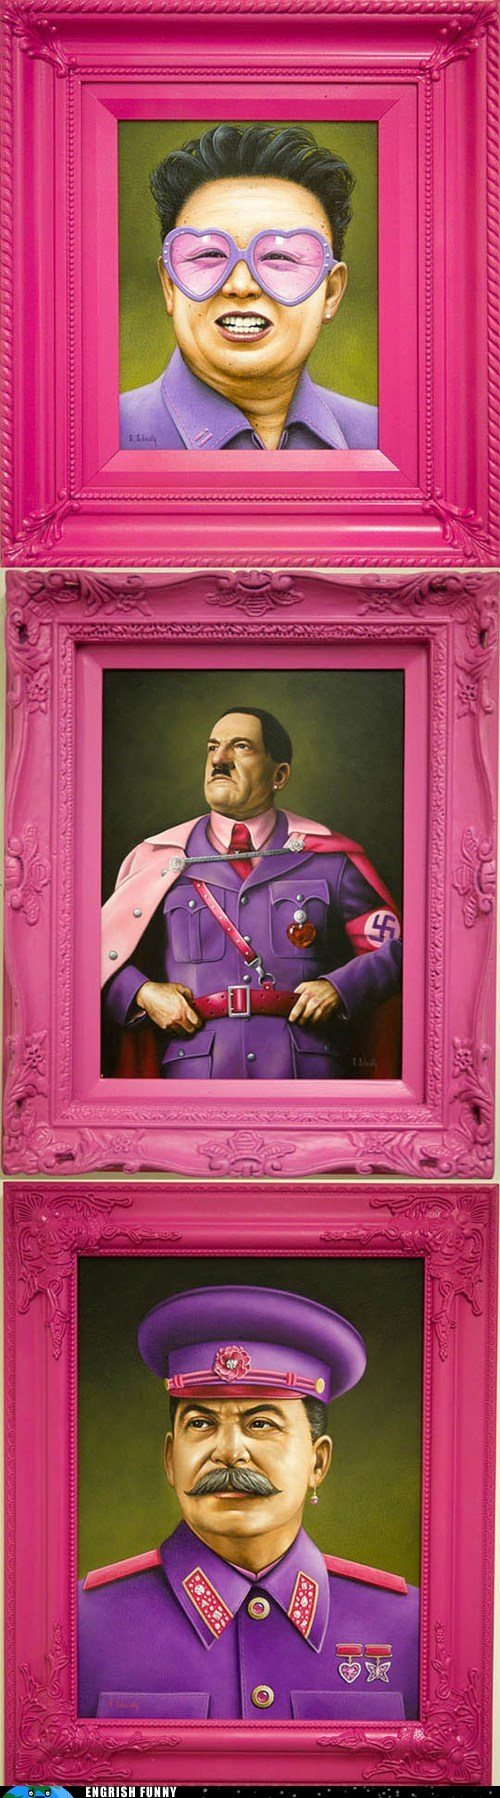 adolf hitler,dictators,fabulous,gay,gay pride,Hall of Fame,hitler,joseph stalin,Kim Jong-Il,scott sheidly,stalin